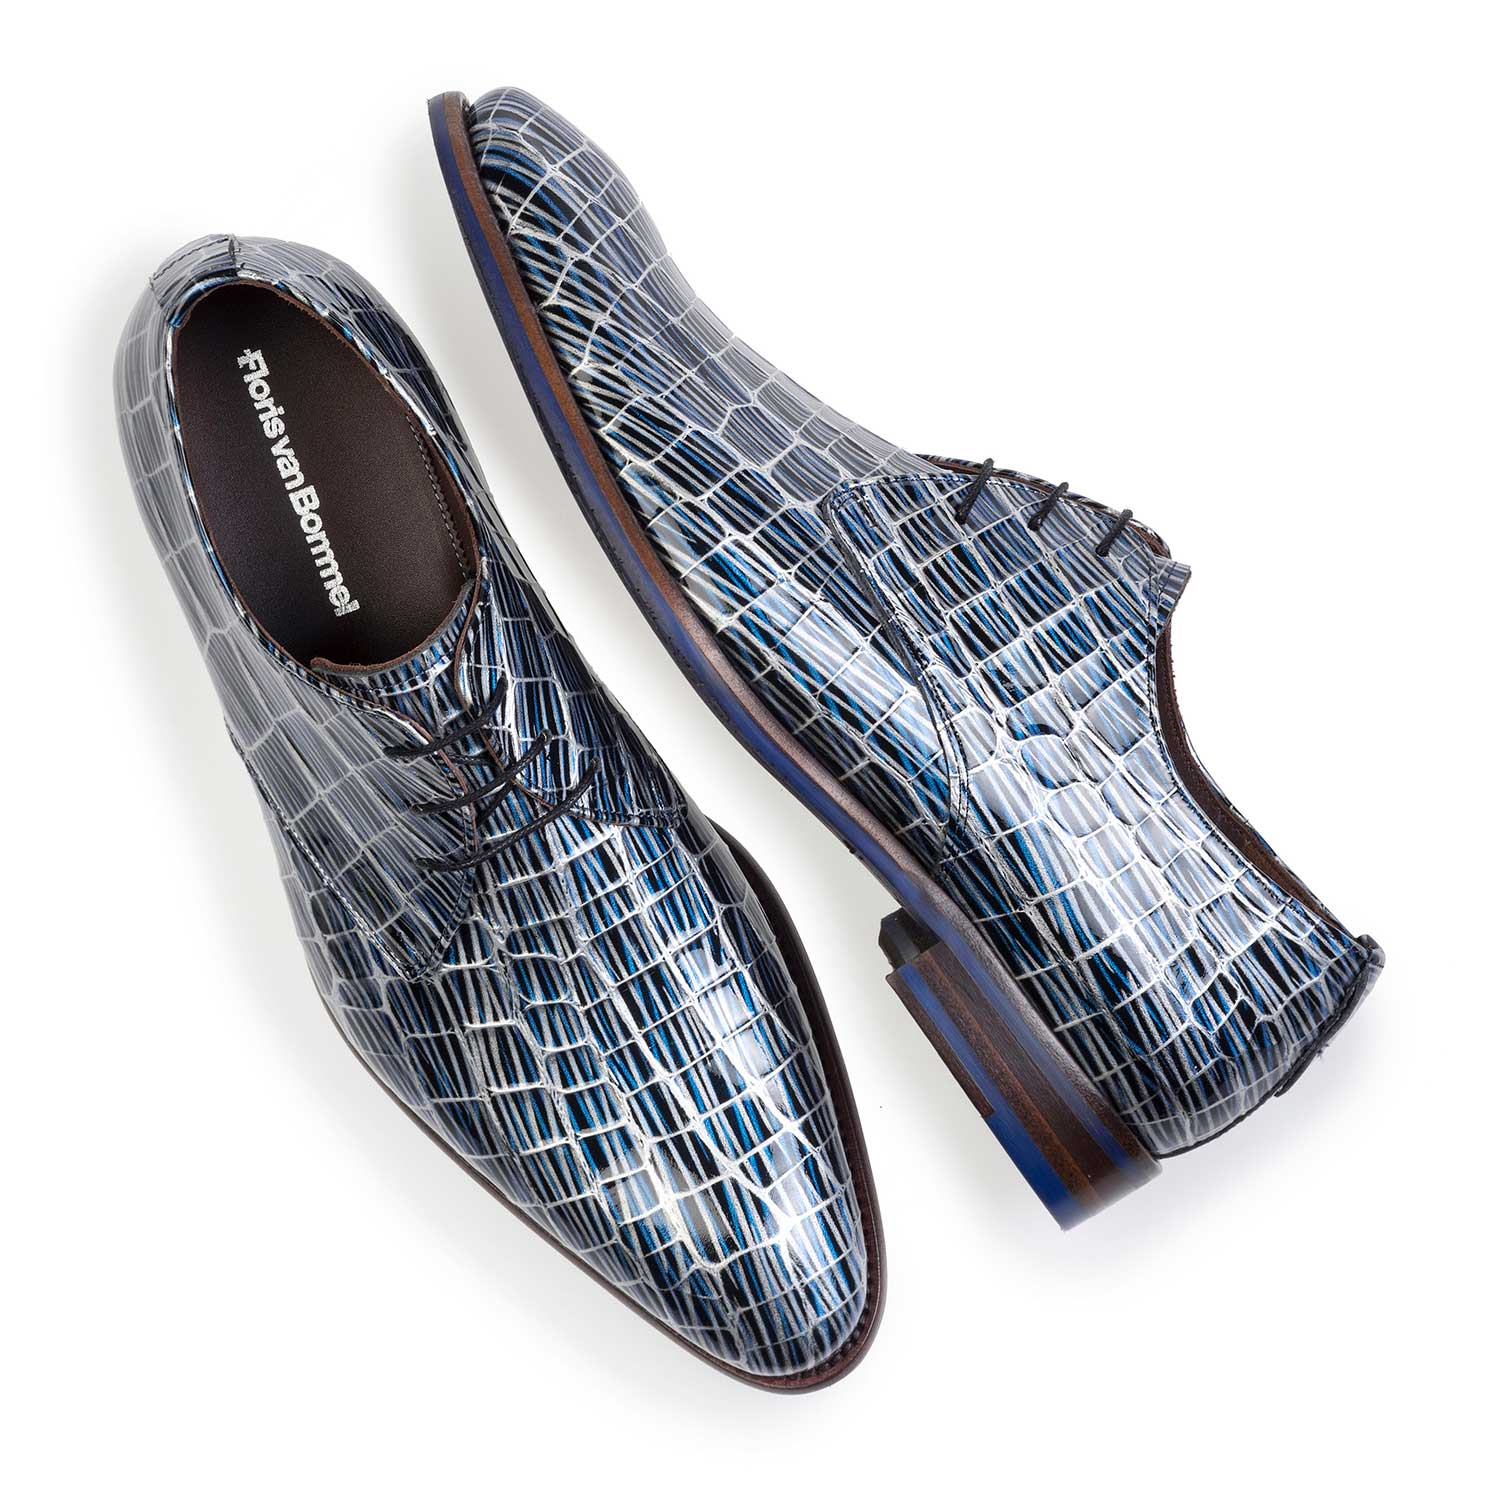 14104/00 - Blue patent leather lace-shoe with print